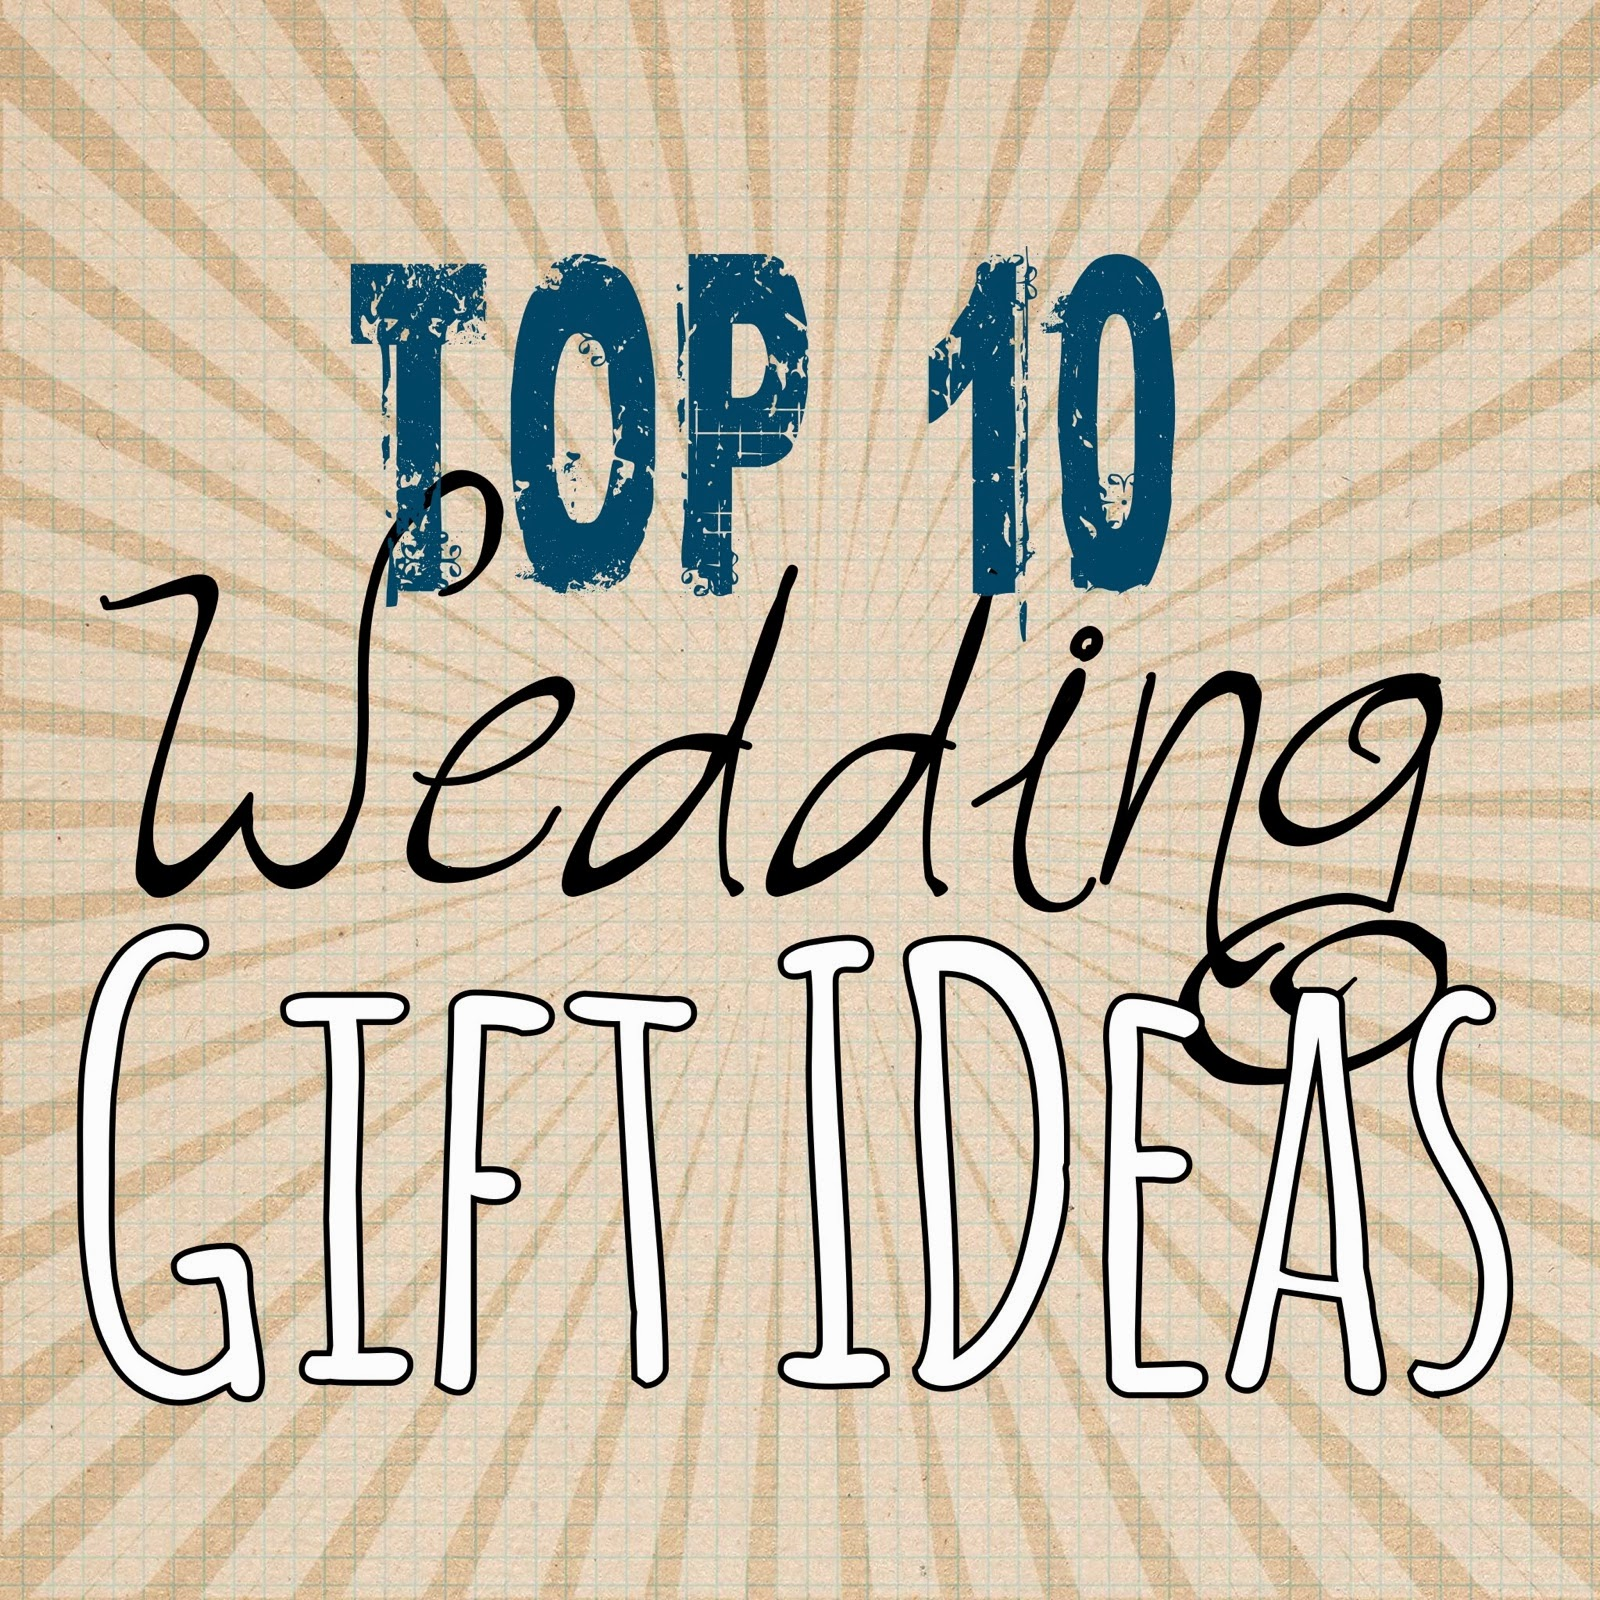 Wedding Gift For Friend Ideas : Top 10 Wedding Gift Ideas - Lou Lou Girls